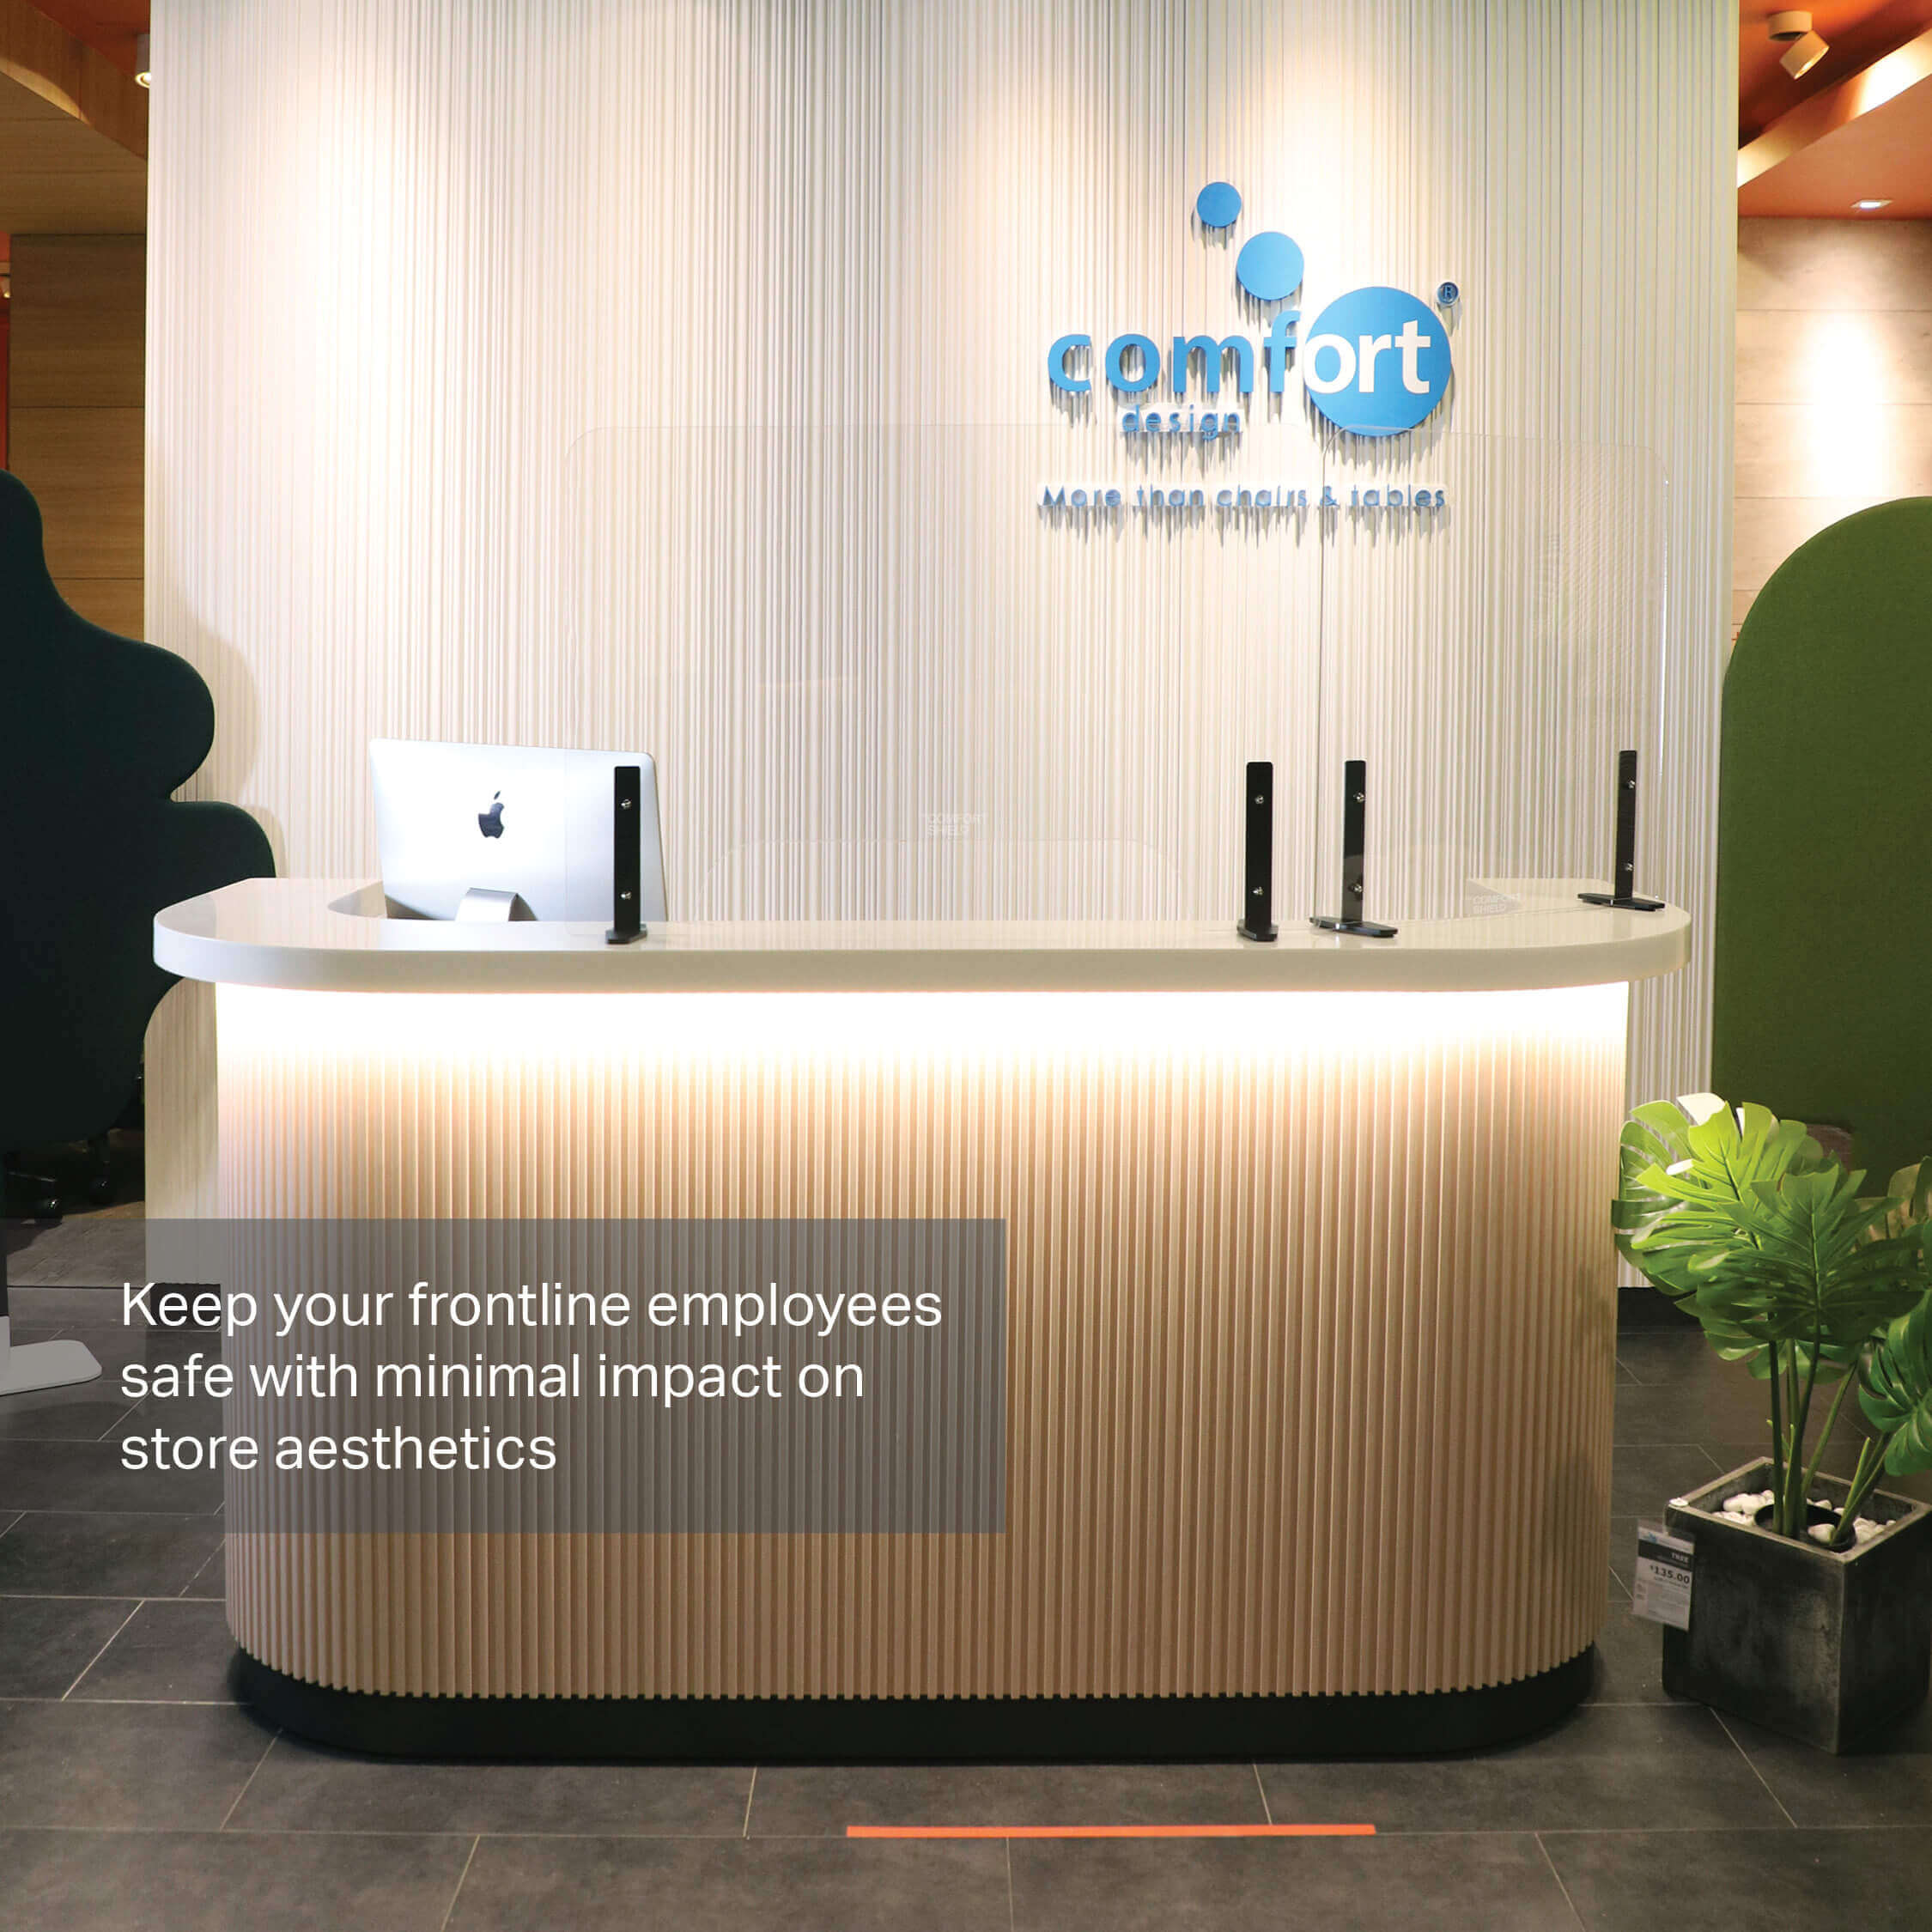 Minimise Contact at the Reception Area with Acrylic Shield - Comfort Furniture